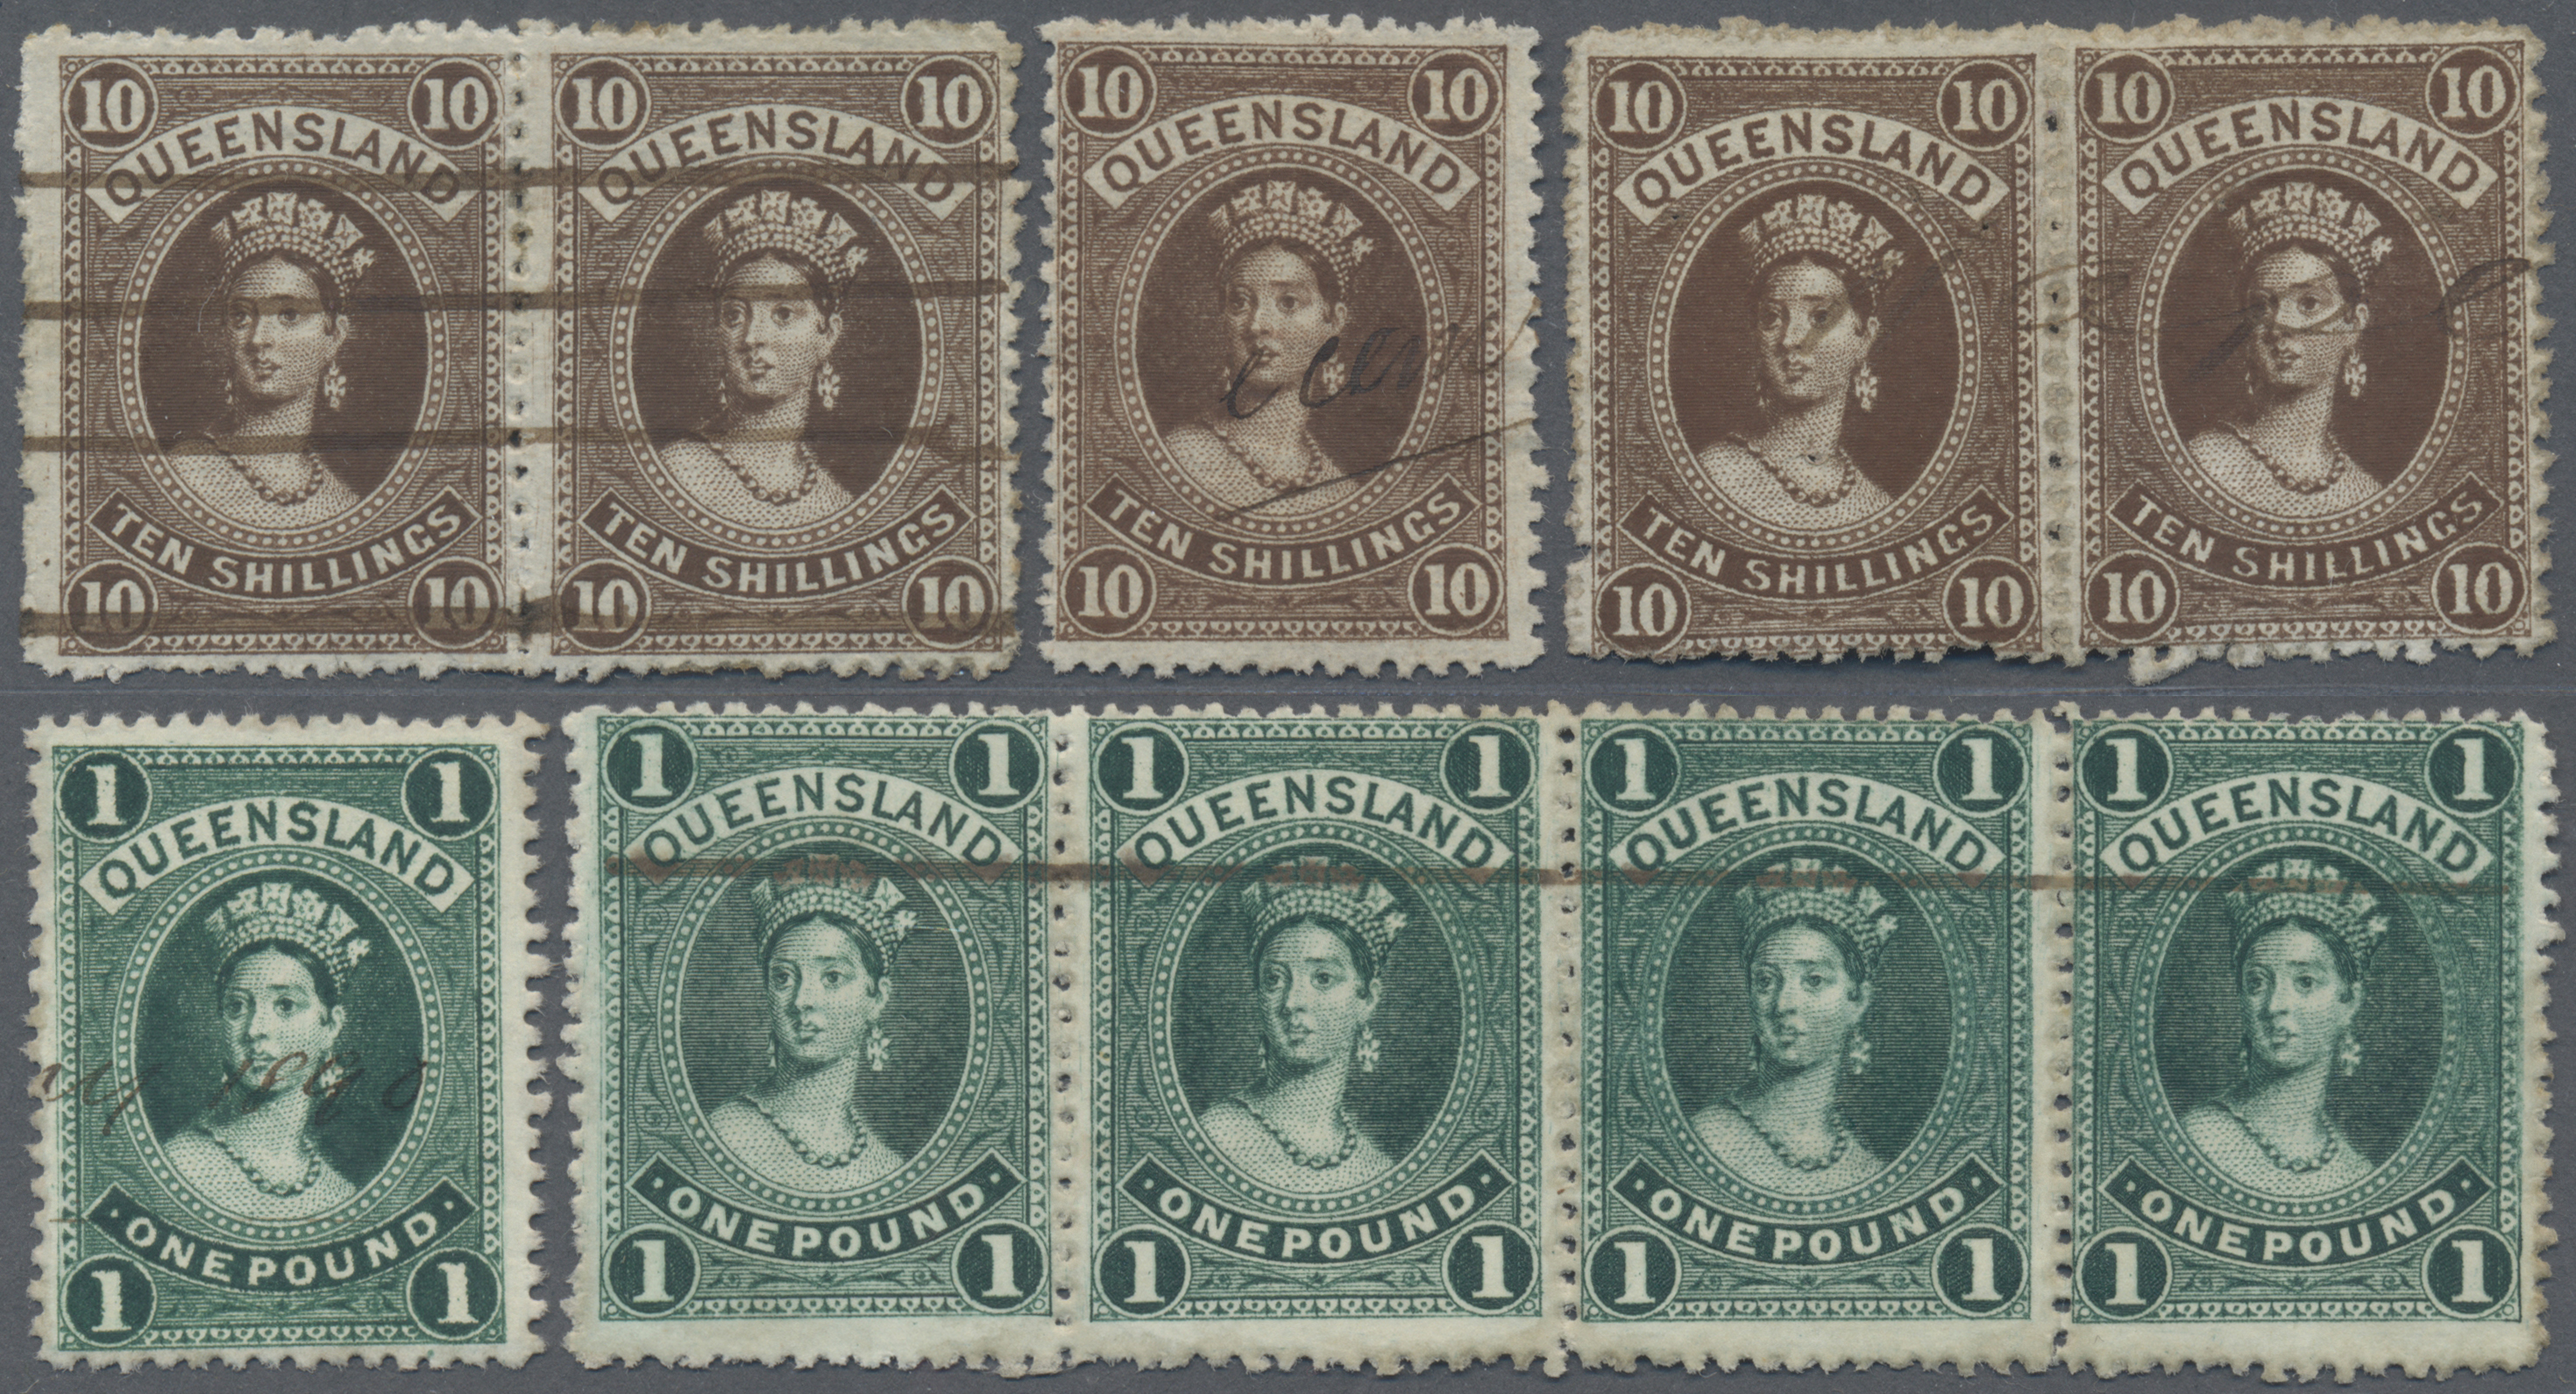 Lot 20192 - queensland  -  Auktionshaus Christoph Gärtner GmbH & Co. KG Sale #46 Collections Worldwide